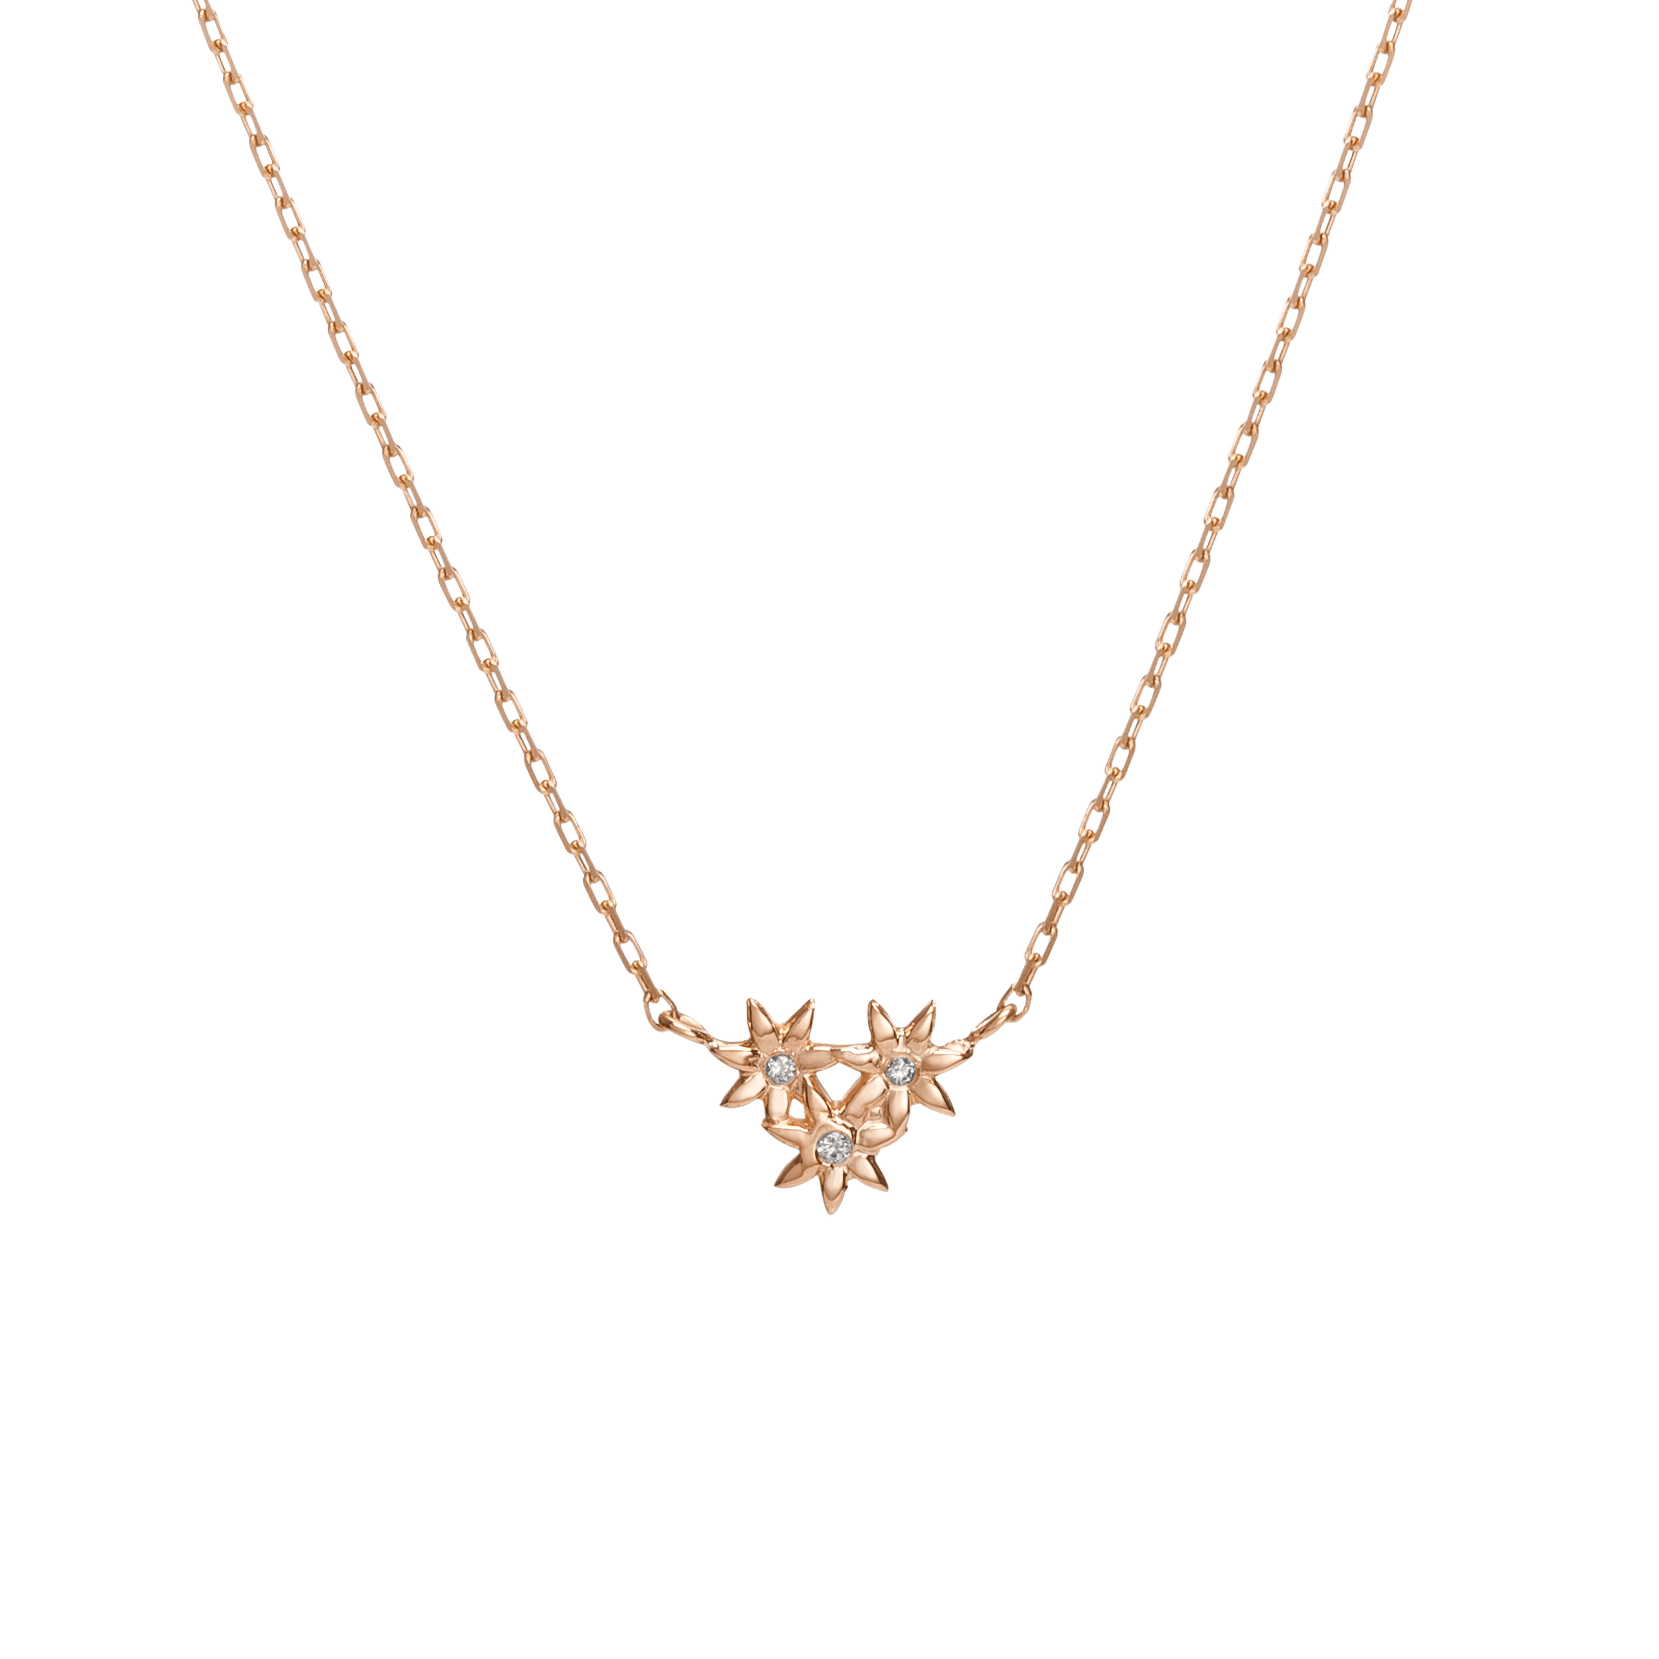 Flower Necklace Mini Pendant with Diamonds – AUrate New York